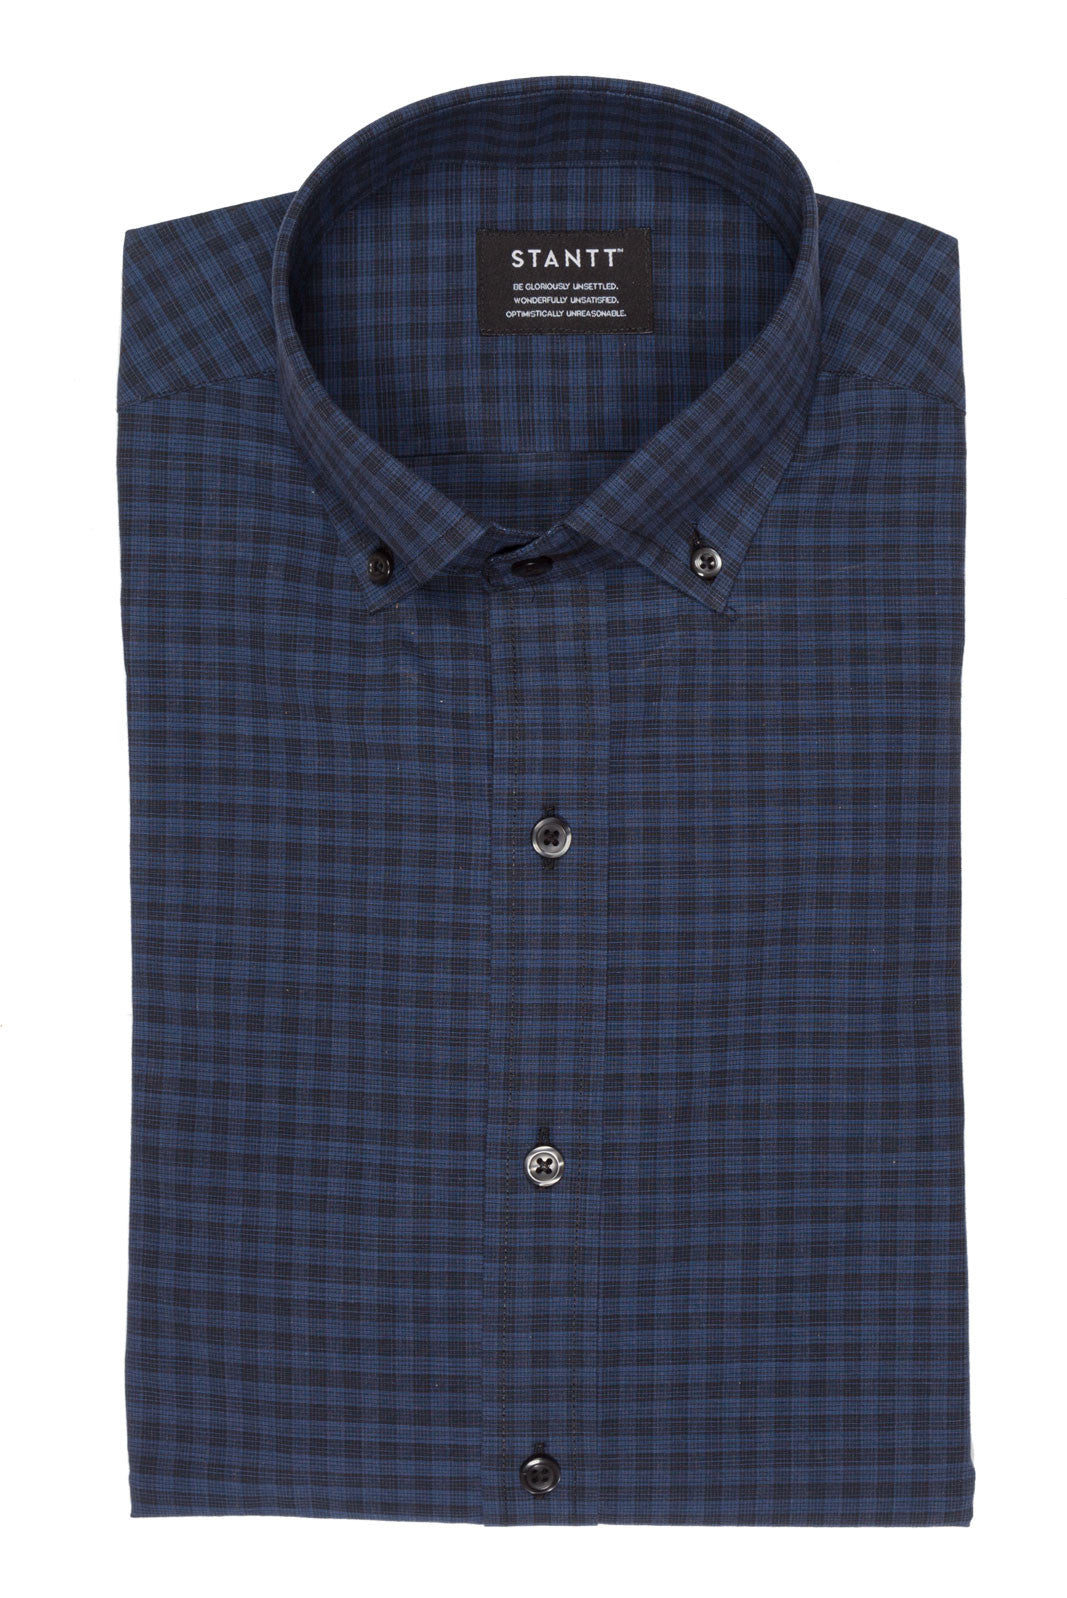 Midnight Blue Graph Check: Semi-Spread Collar, French Cuff